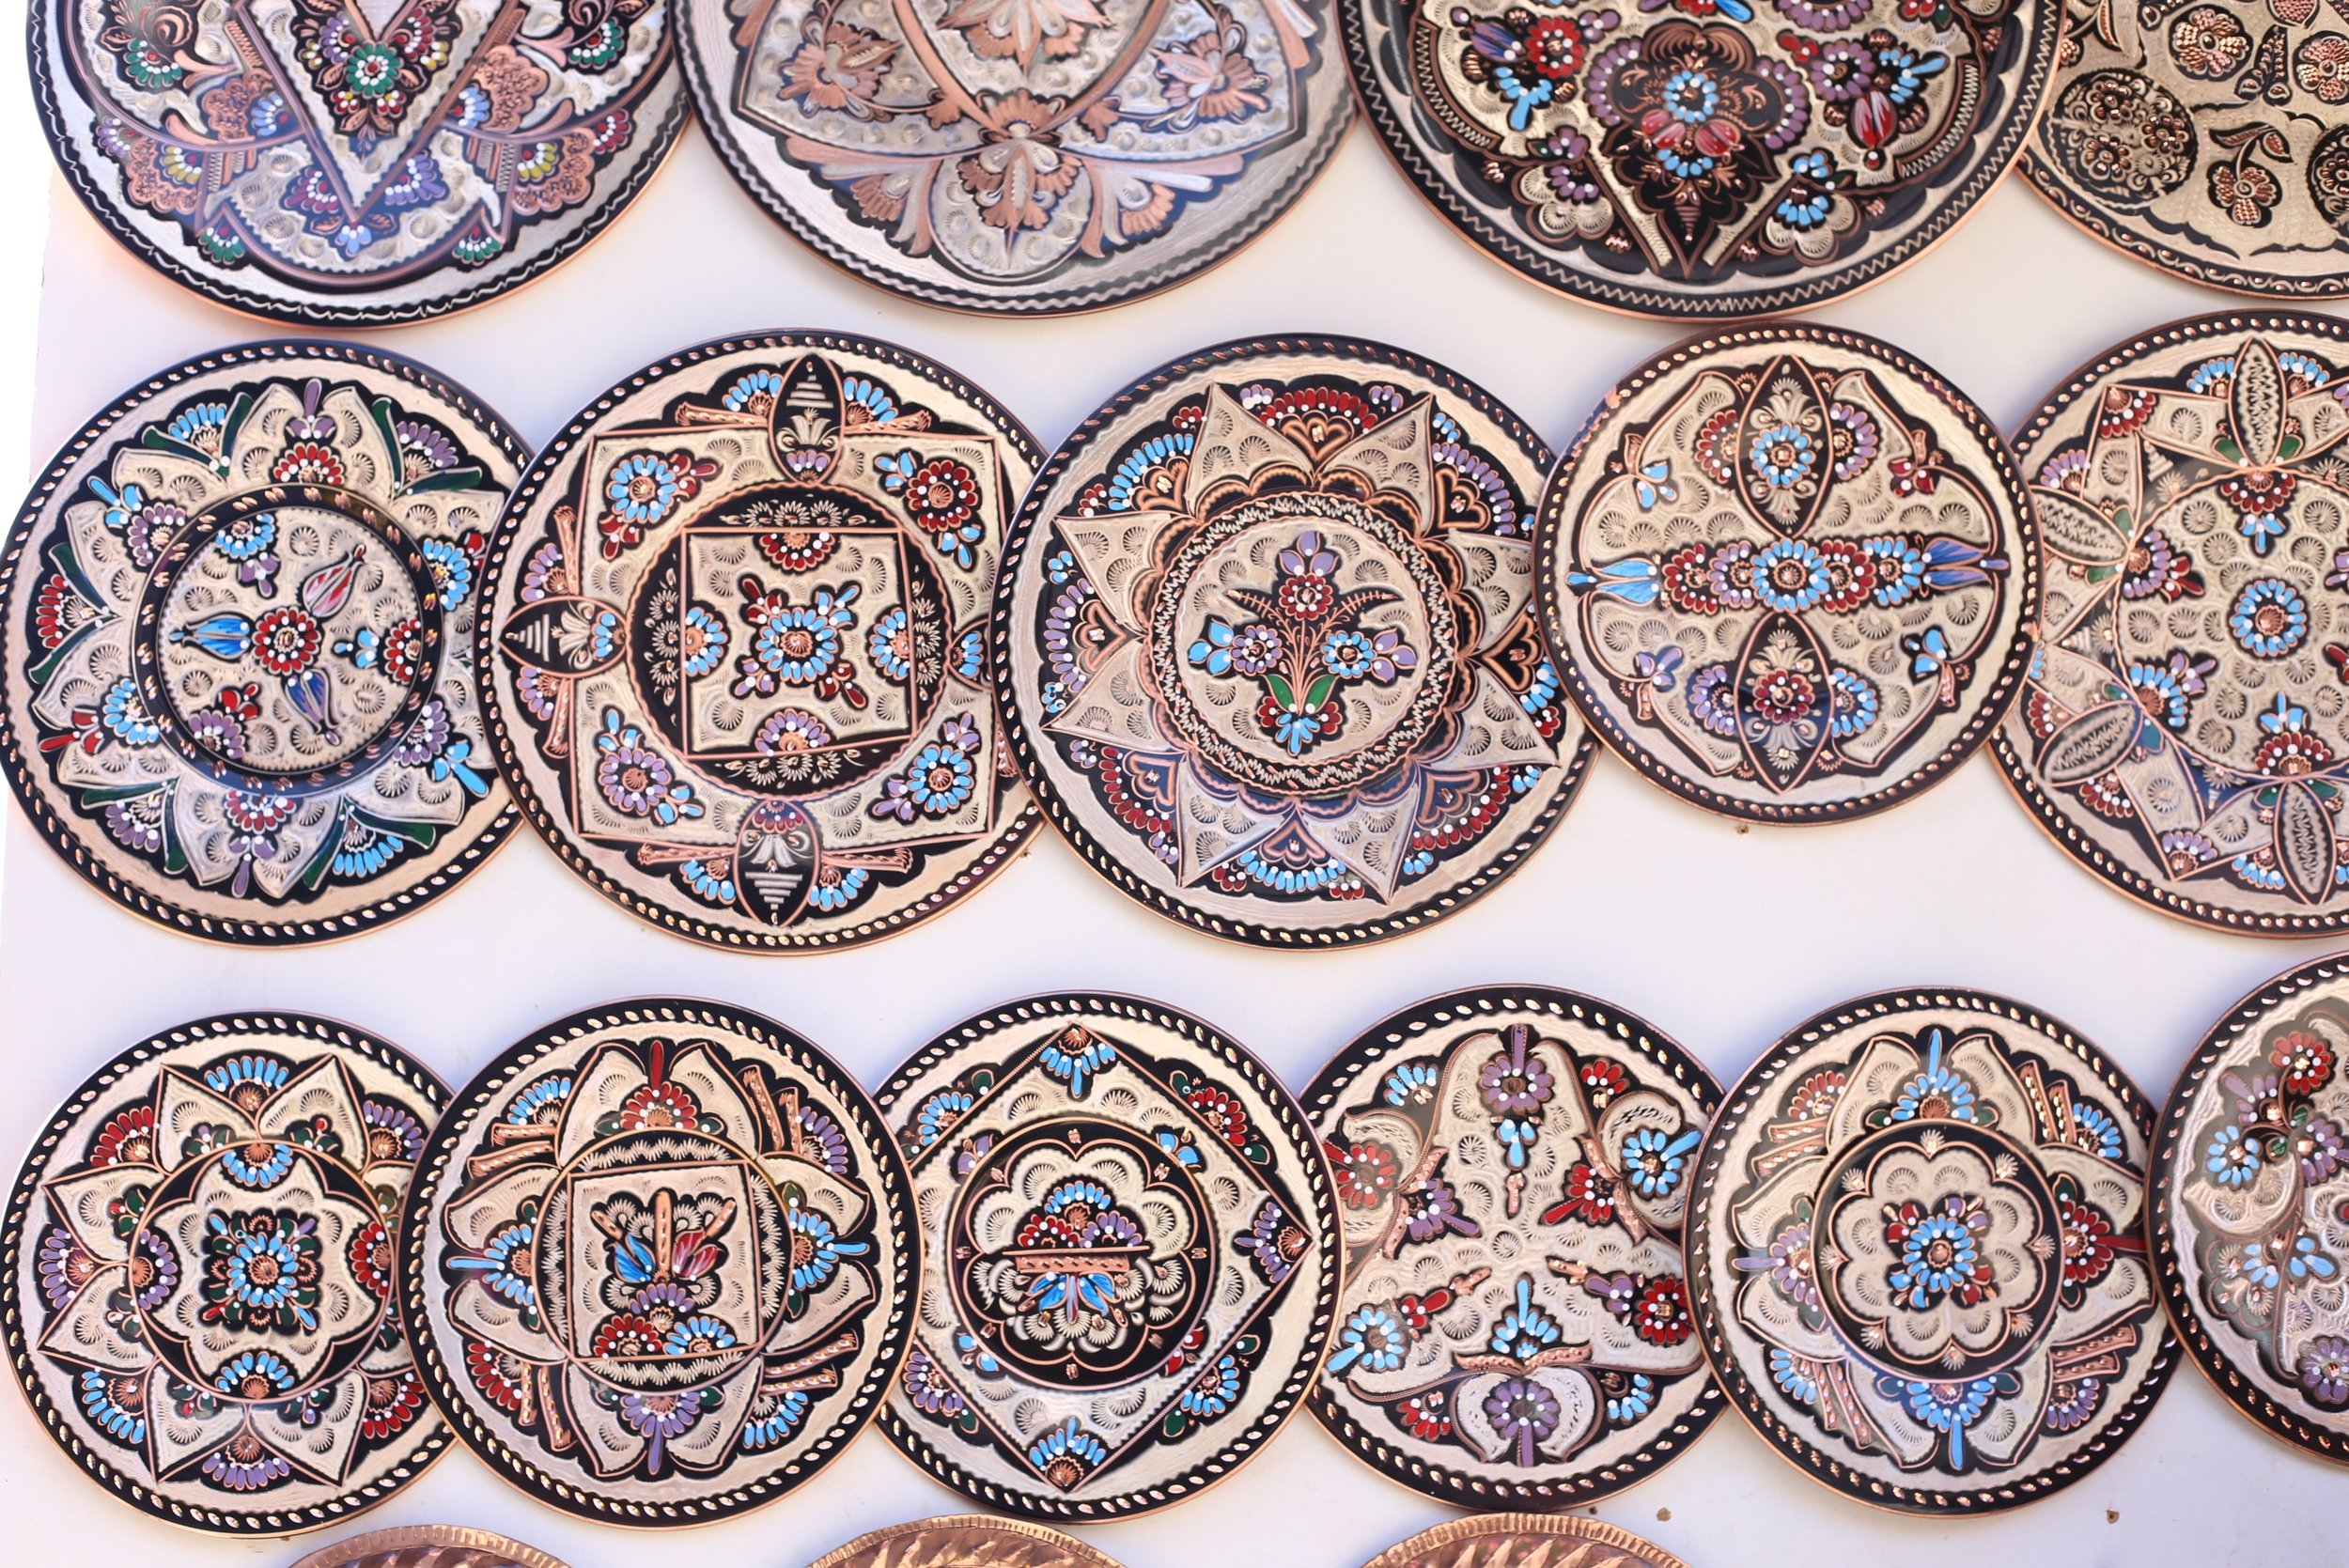 Moorish metal plates painted with many patterns.